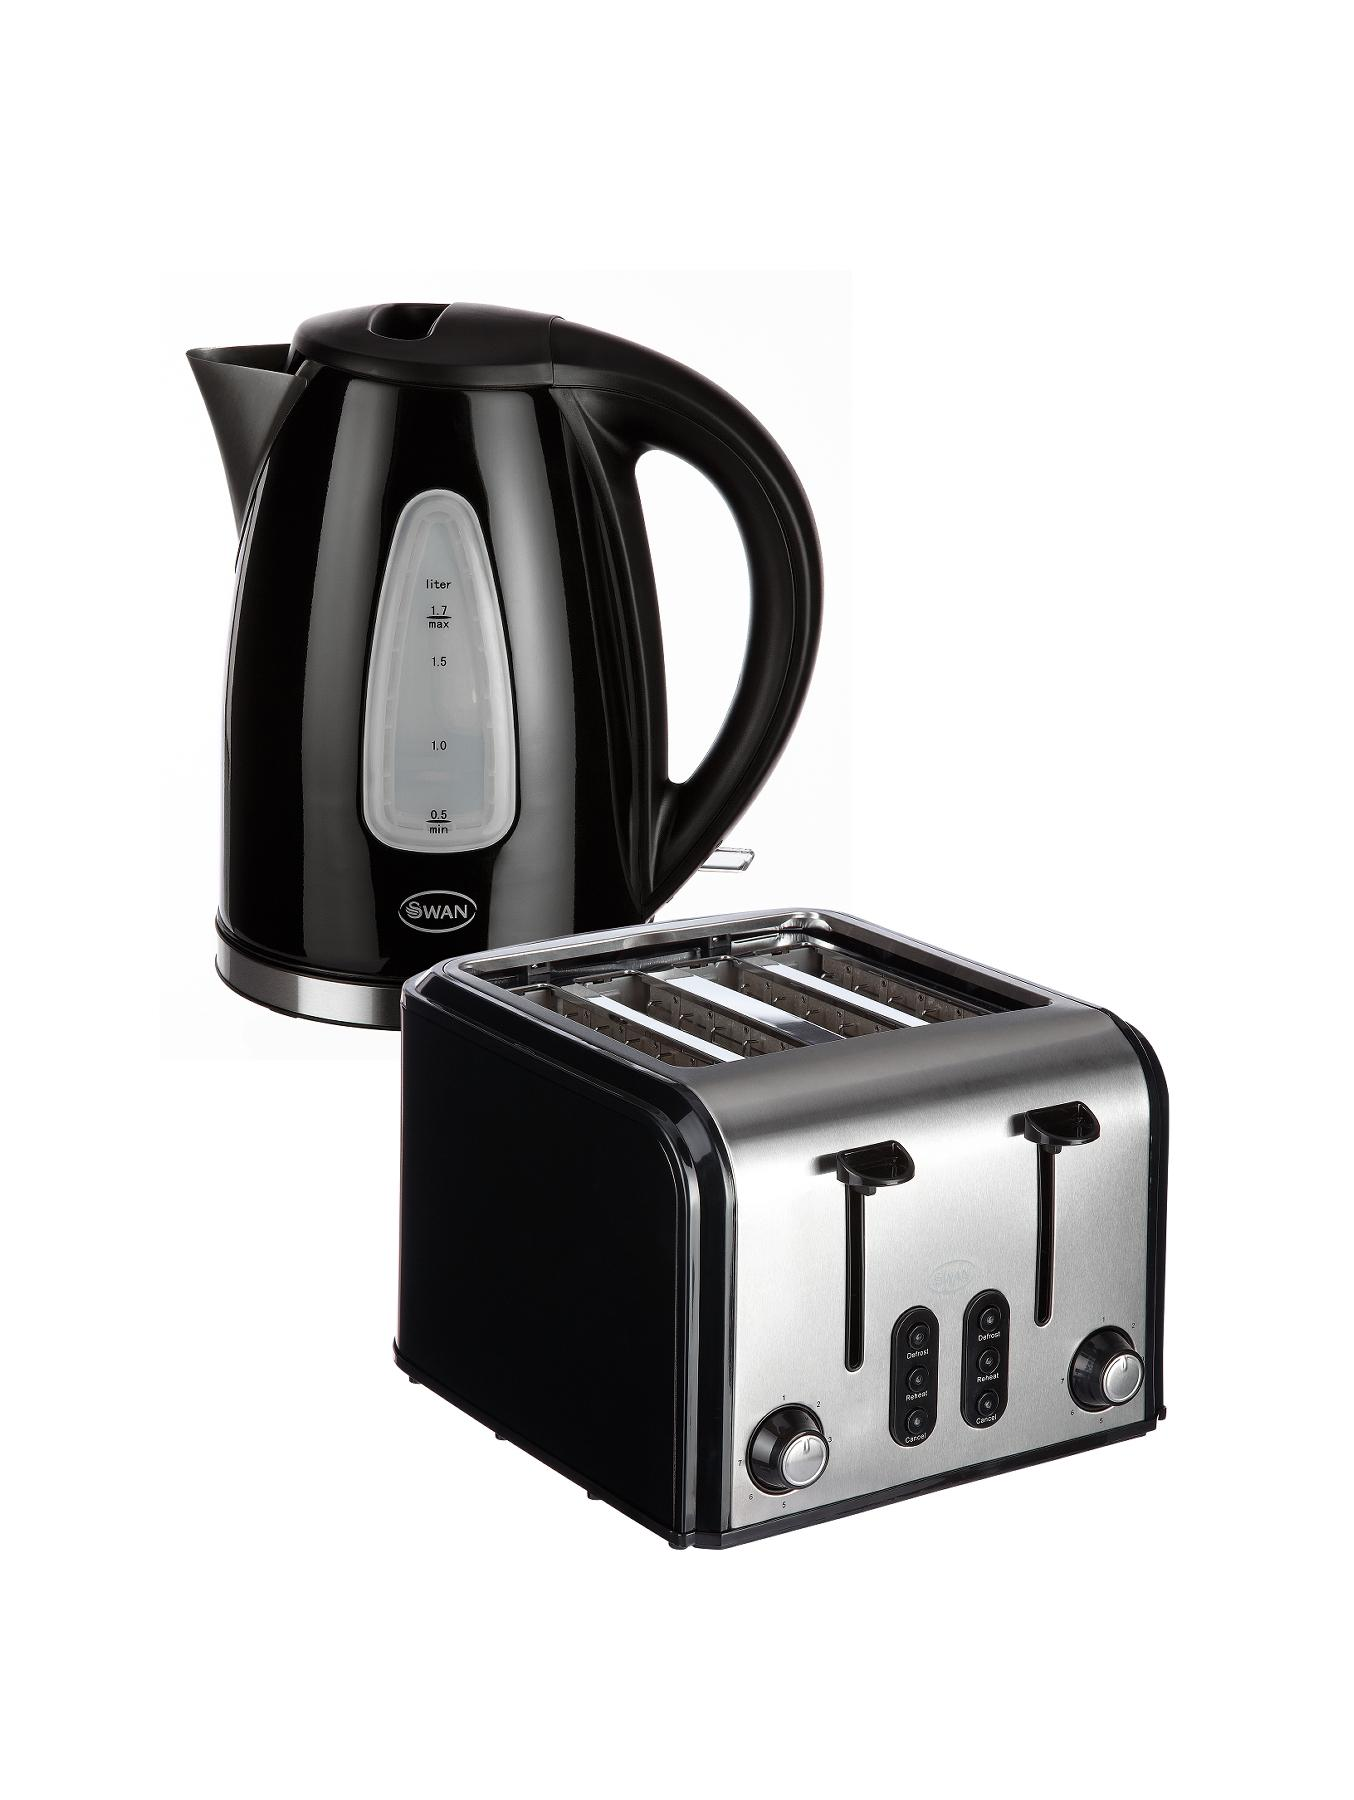 SK13110B/ST70100B Fastboil Kettle and 4-slice Toaster Pack - Black